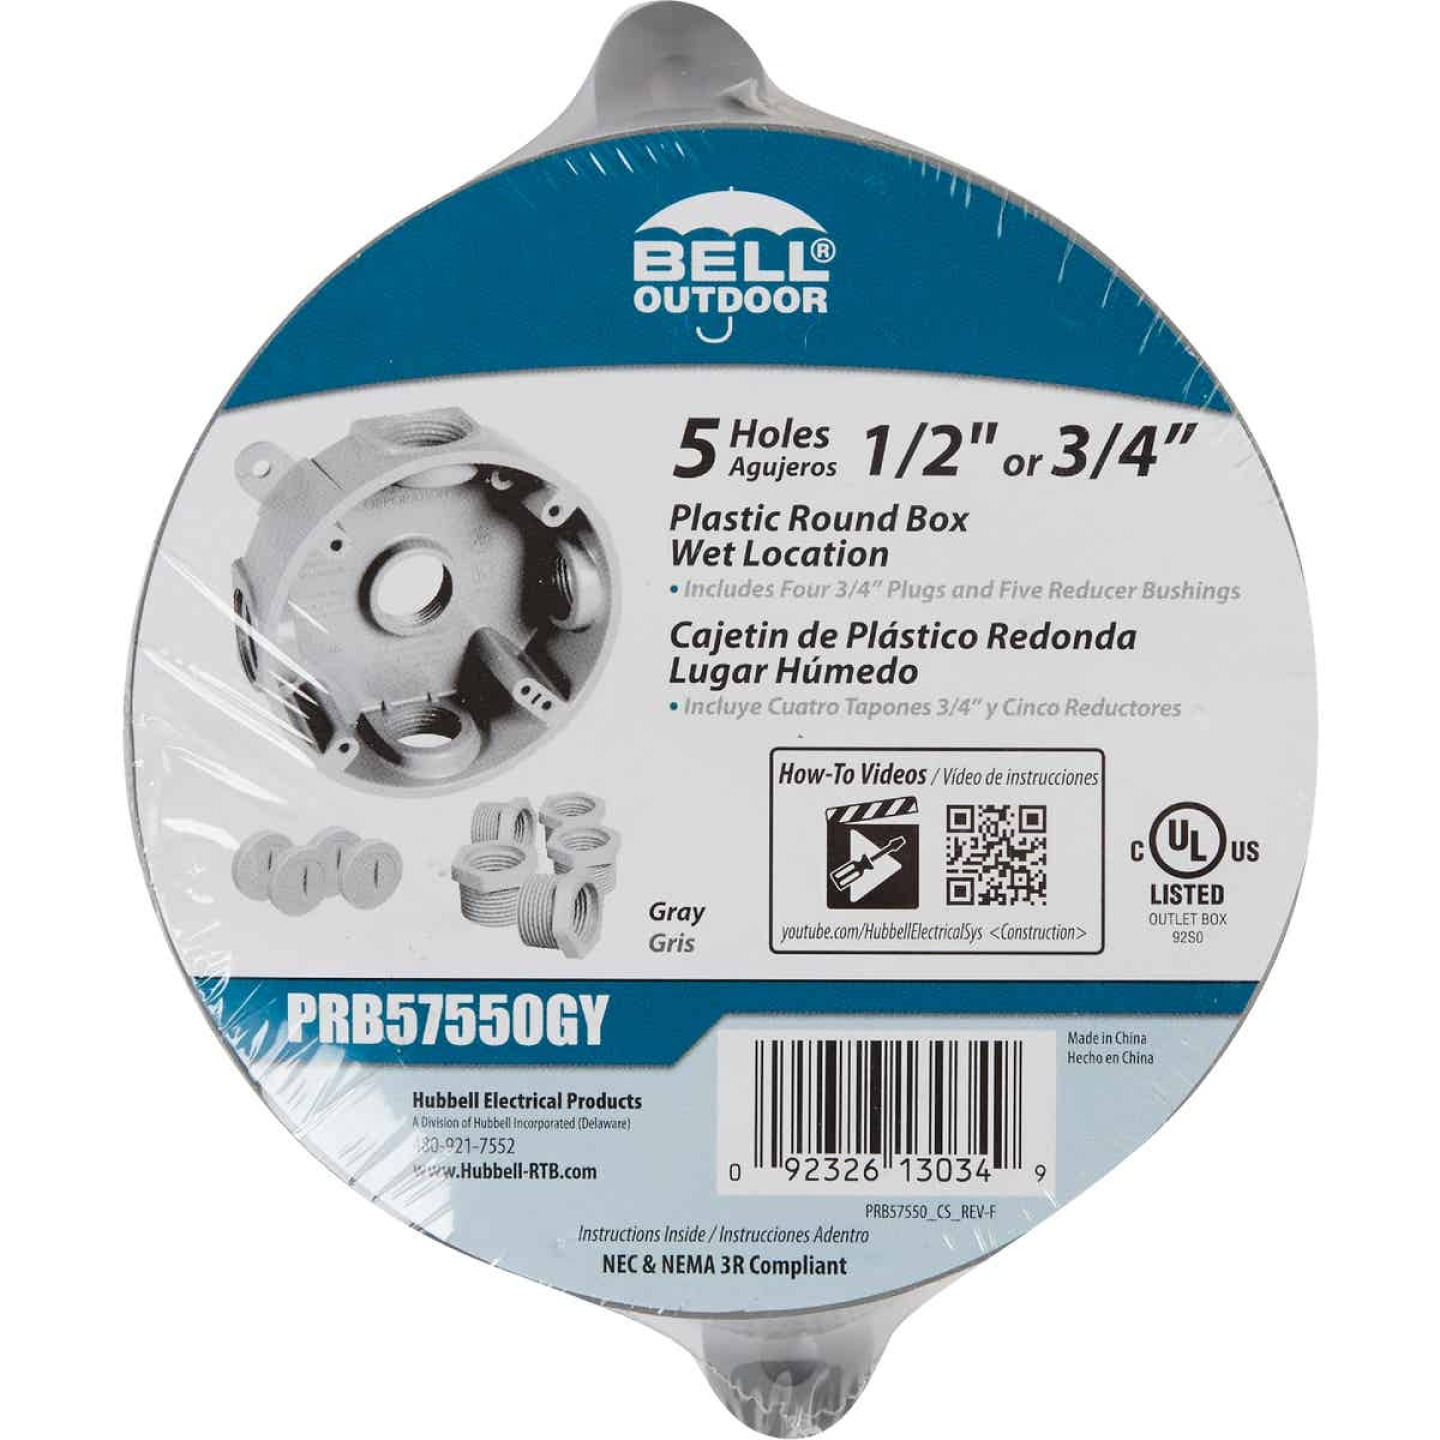 Bell Single Gang 1/2 In.,3/4 In. 5-Outlet Gray Round PVC Weatherproof Outdoor Outlet Box Image 2